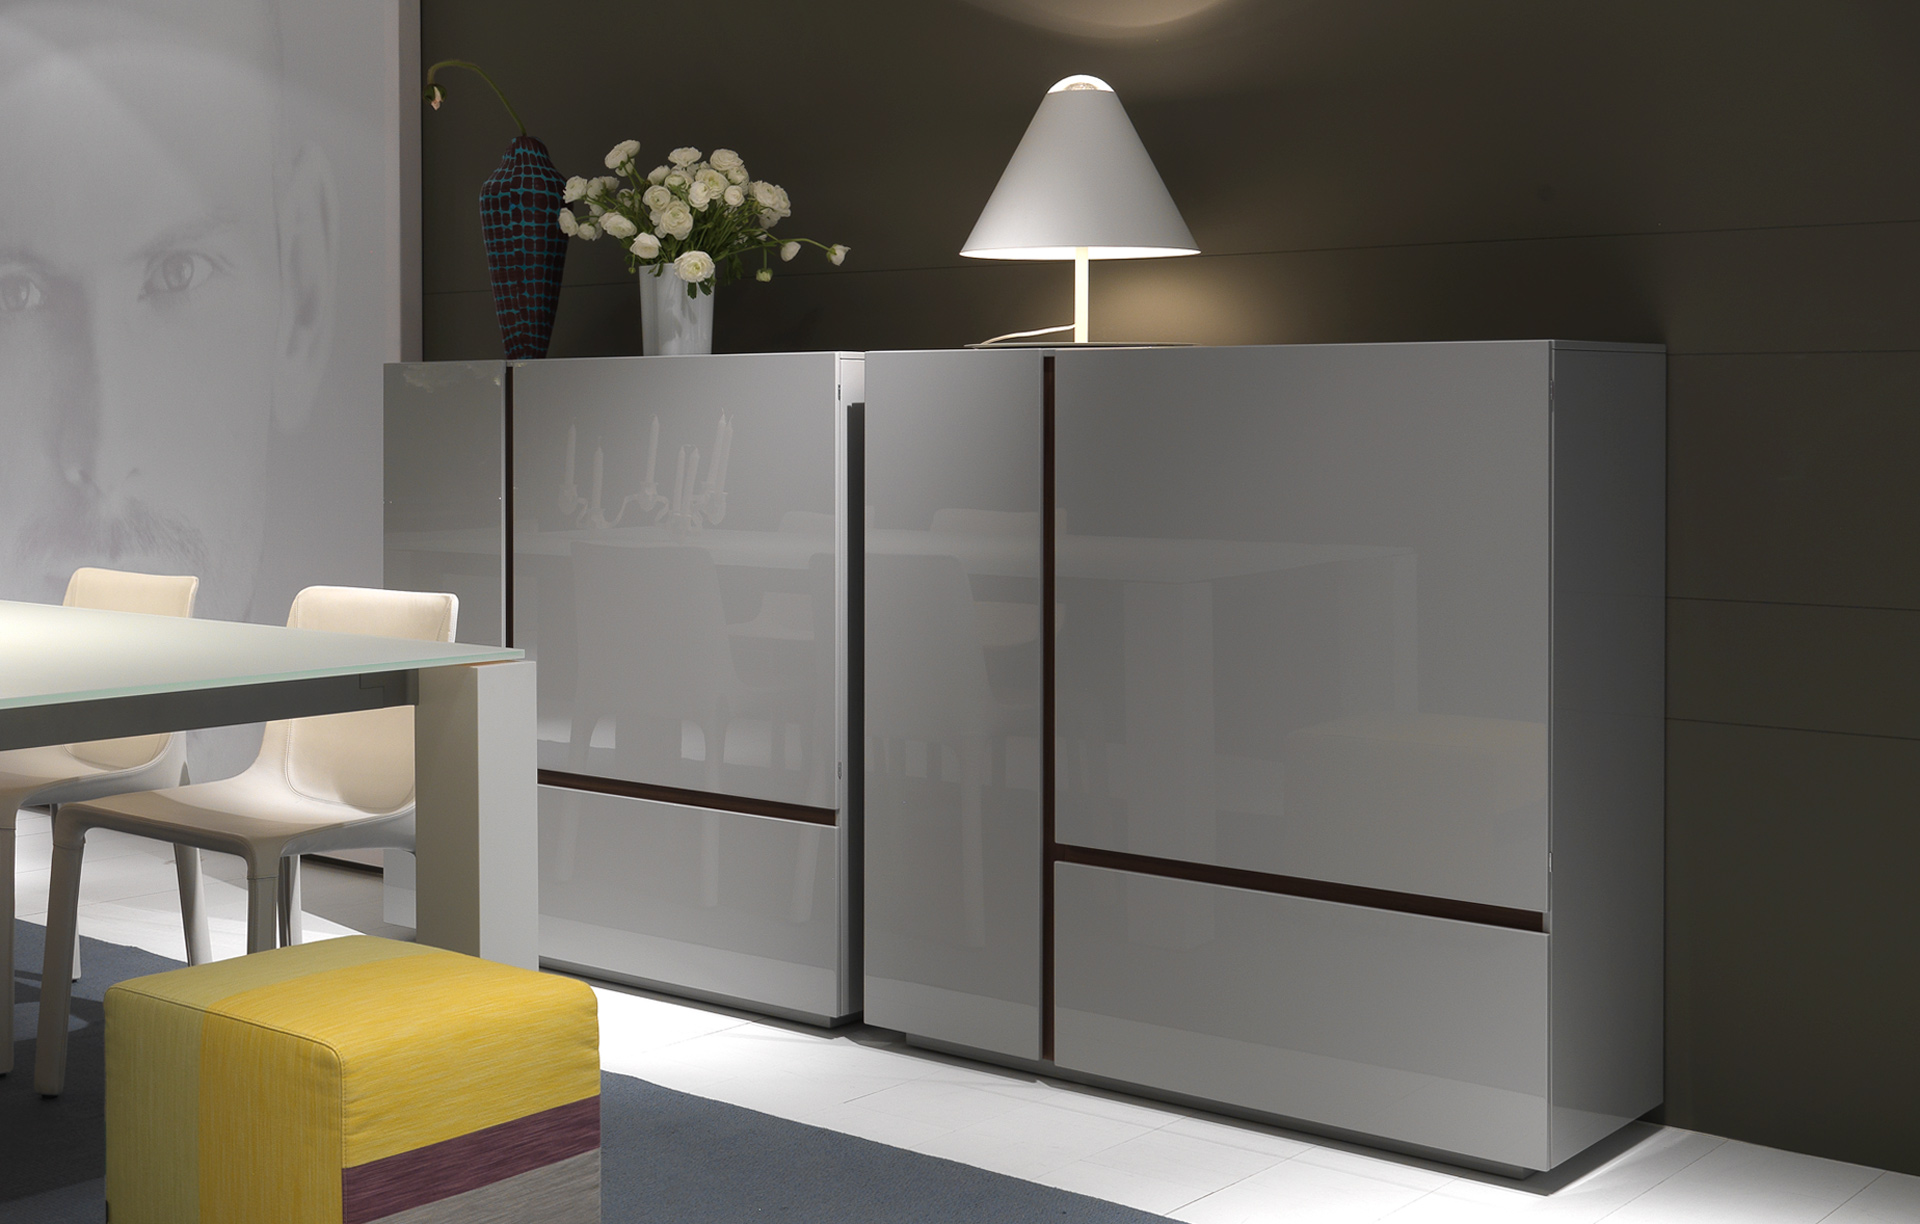 Madia free poliform design carlo colombo arredamento for Madie design online